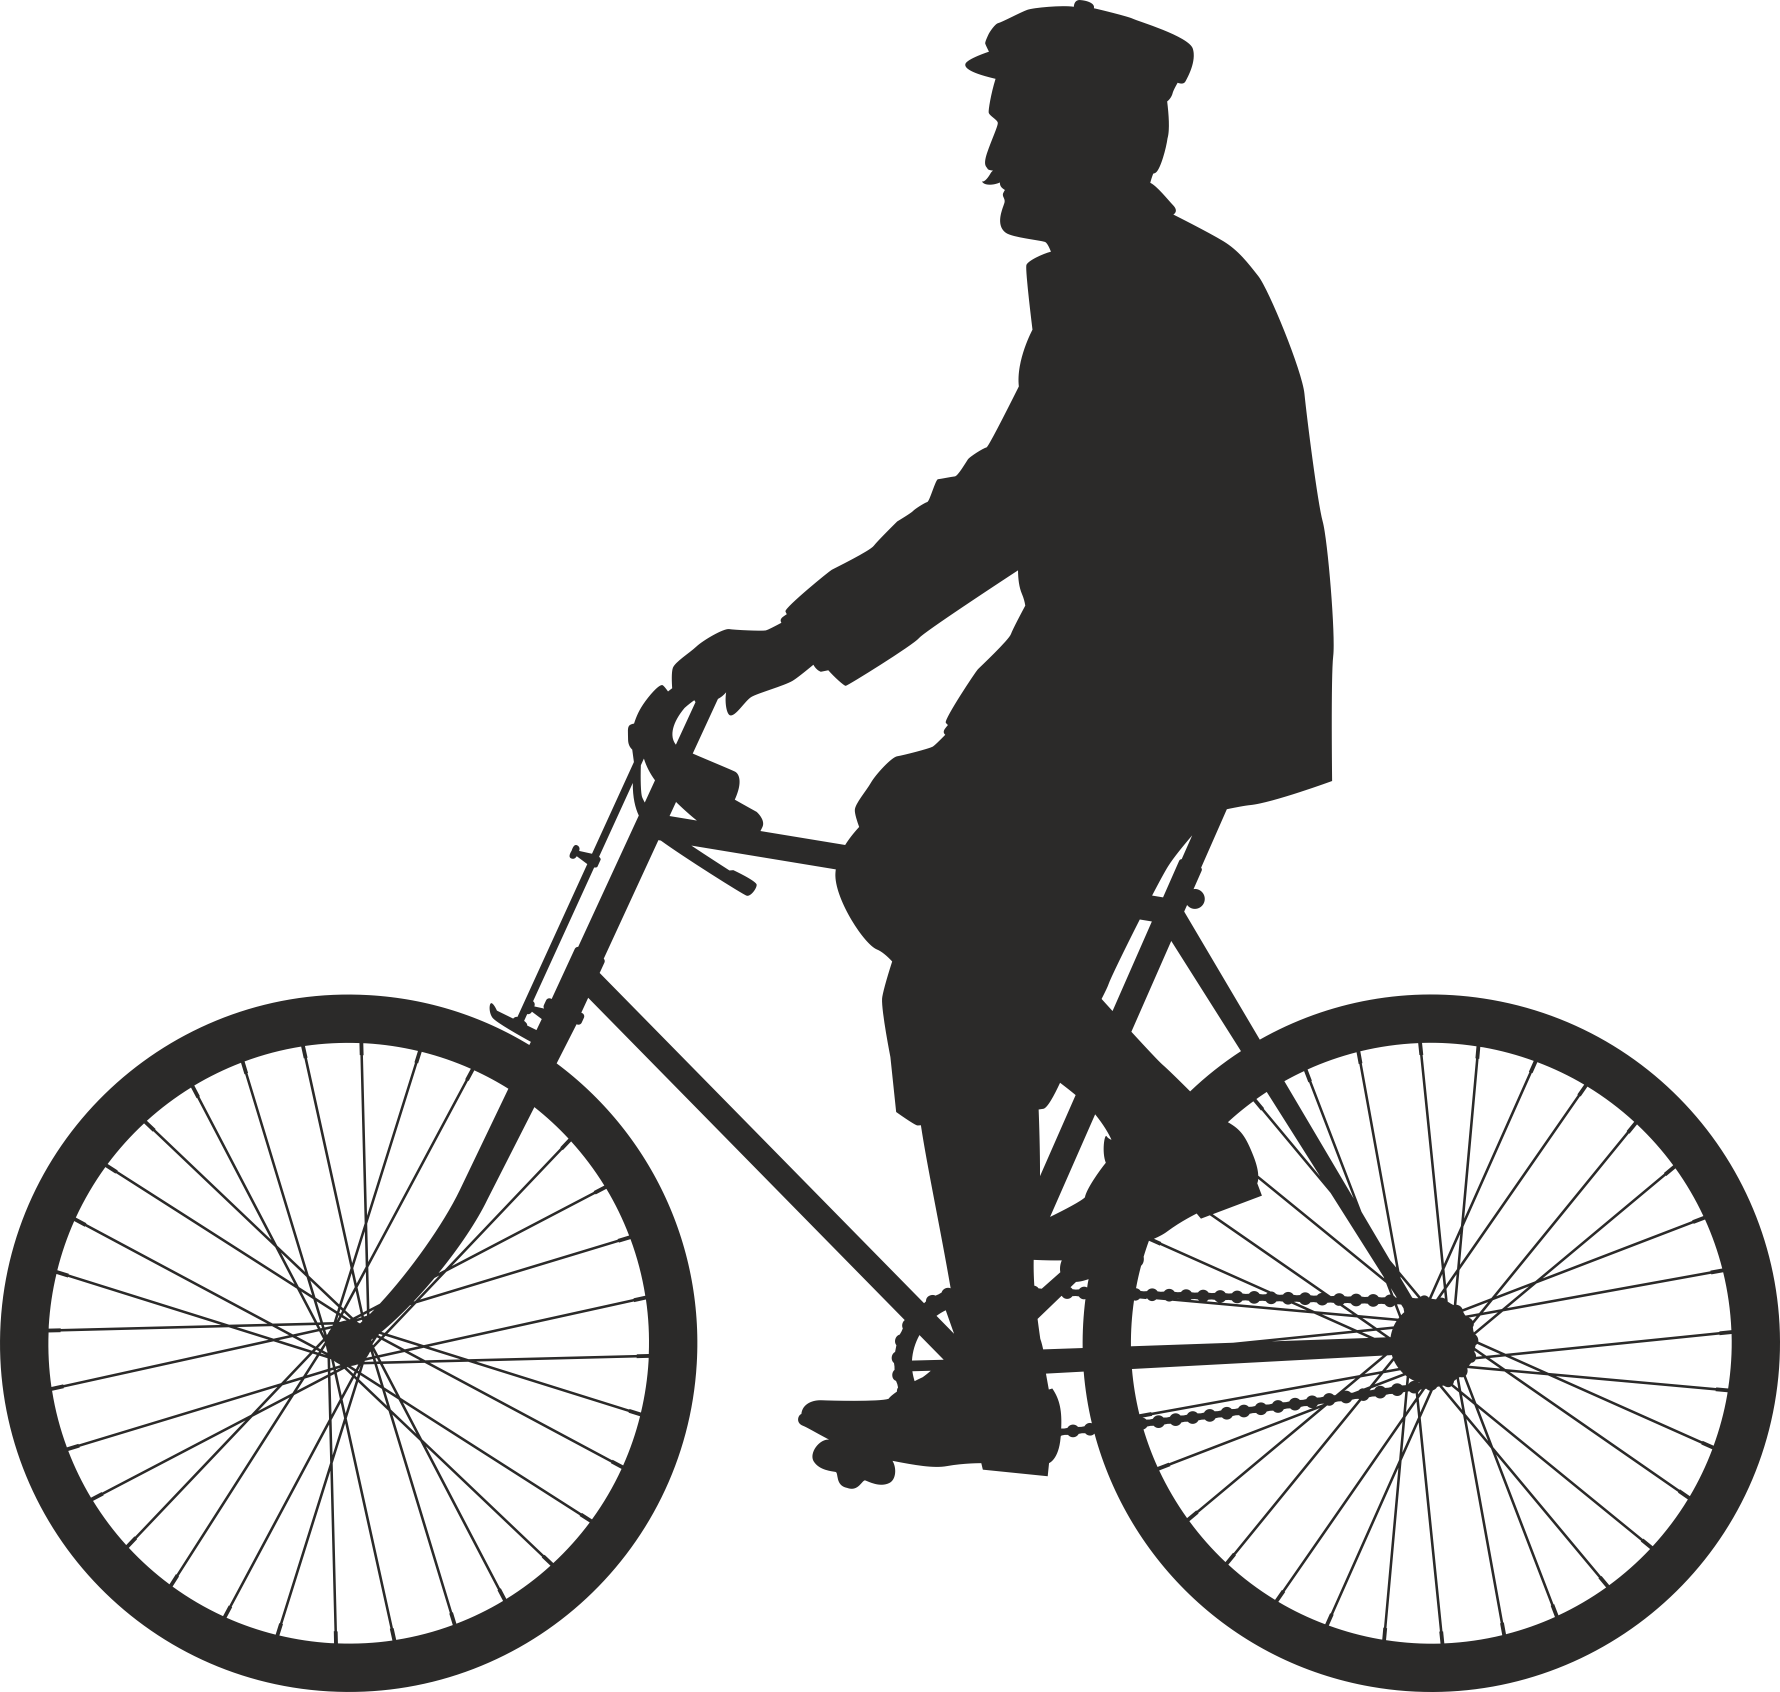 Silhouette Cyclist Collection Of Bicycle 07 Free DXF File